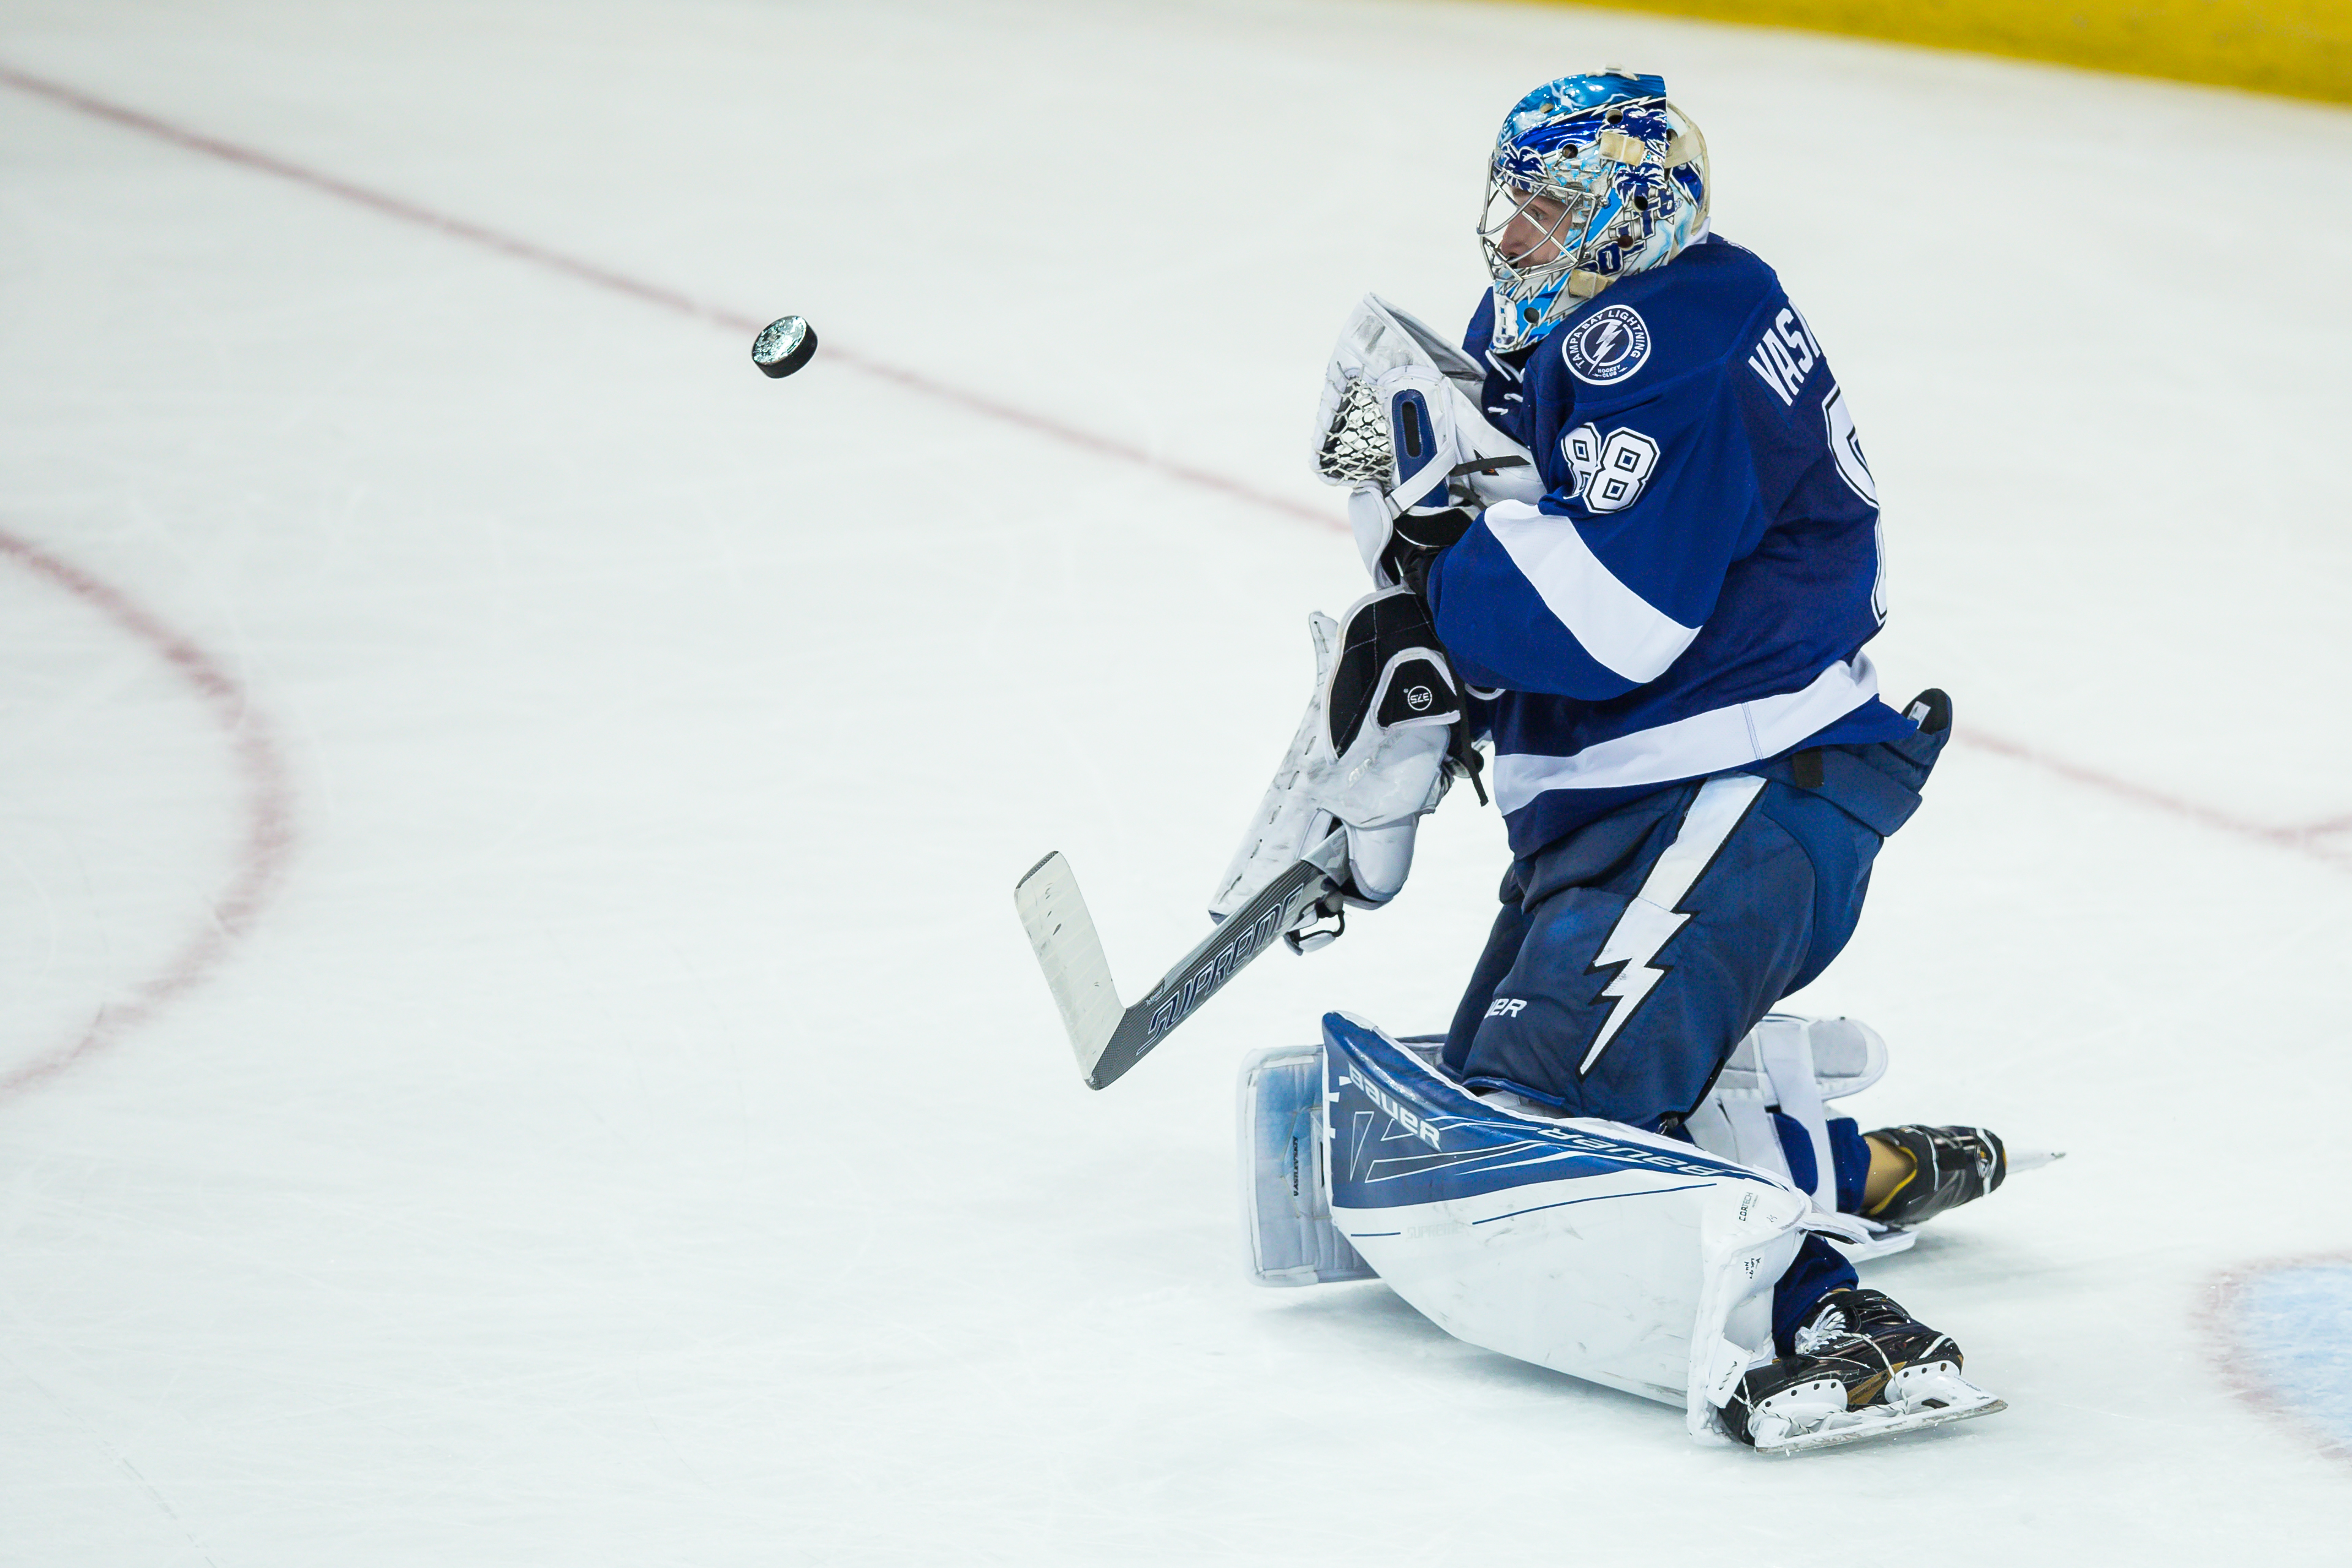 Vasilevskiy won his second straight game for Lightning./TRAVIS PENDERGRASS